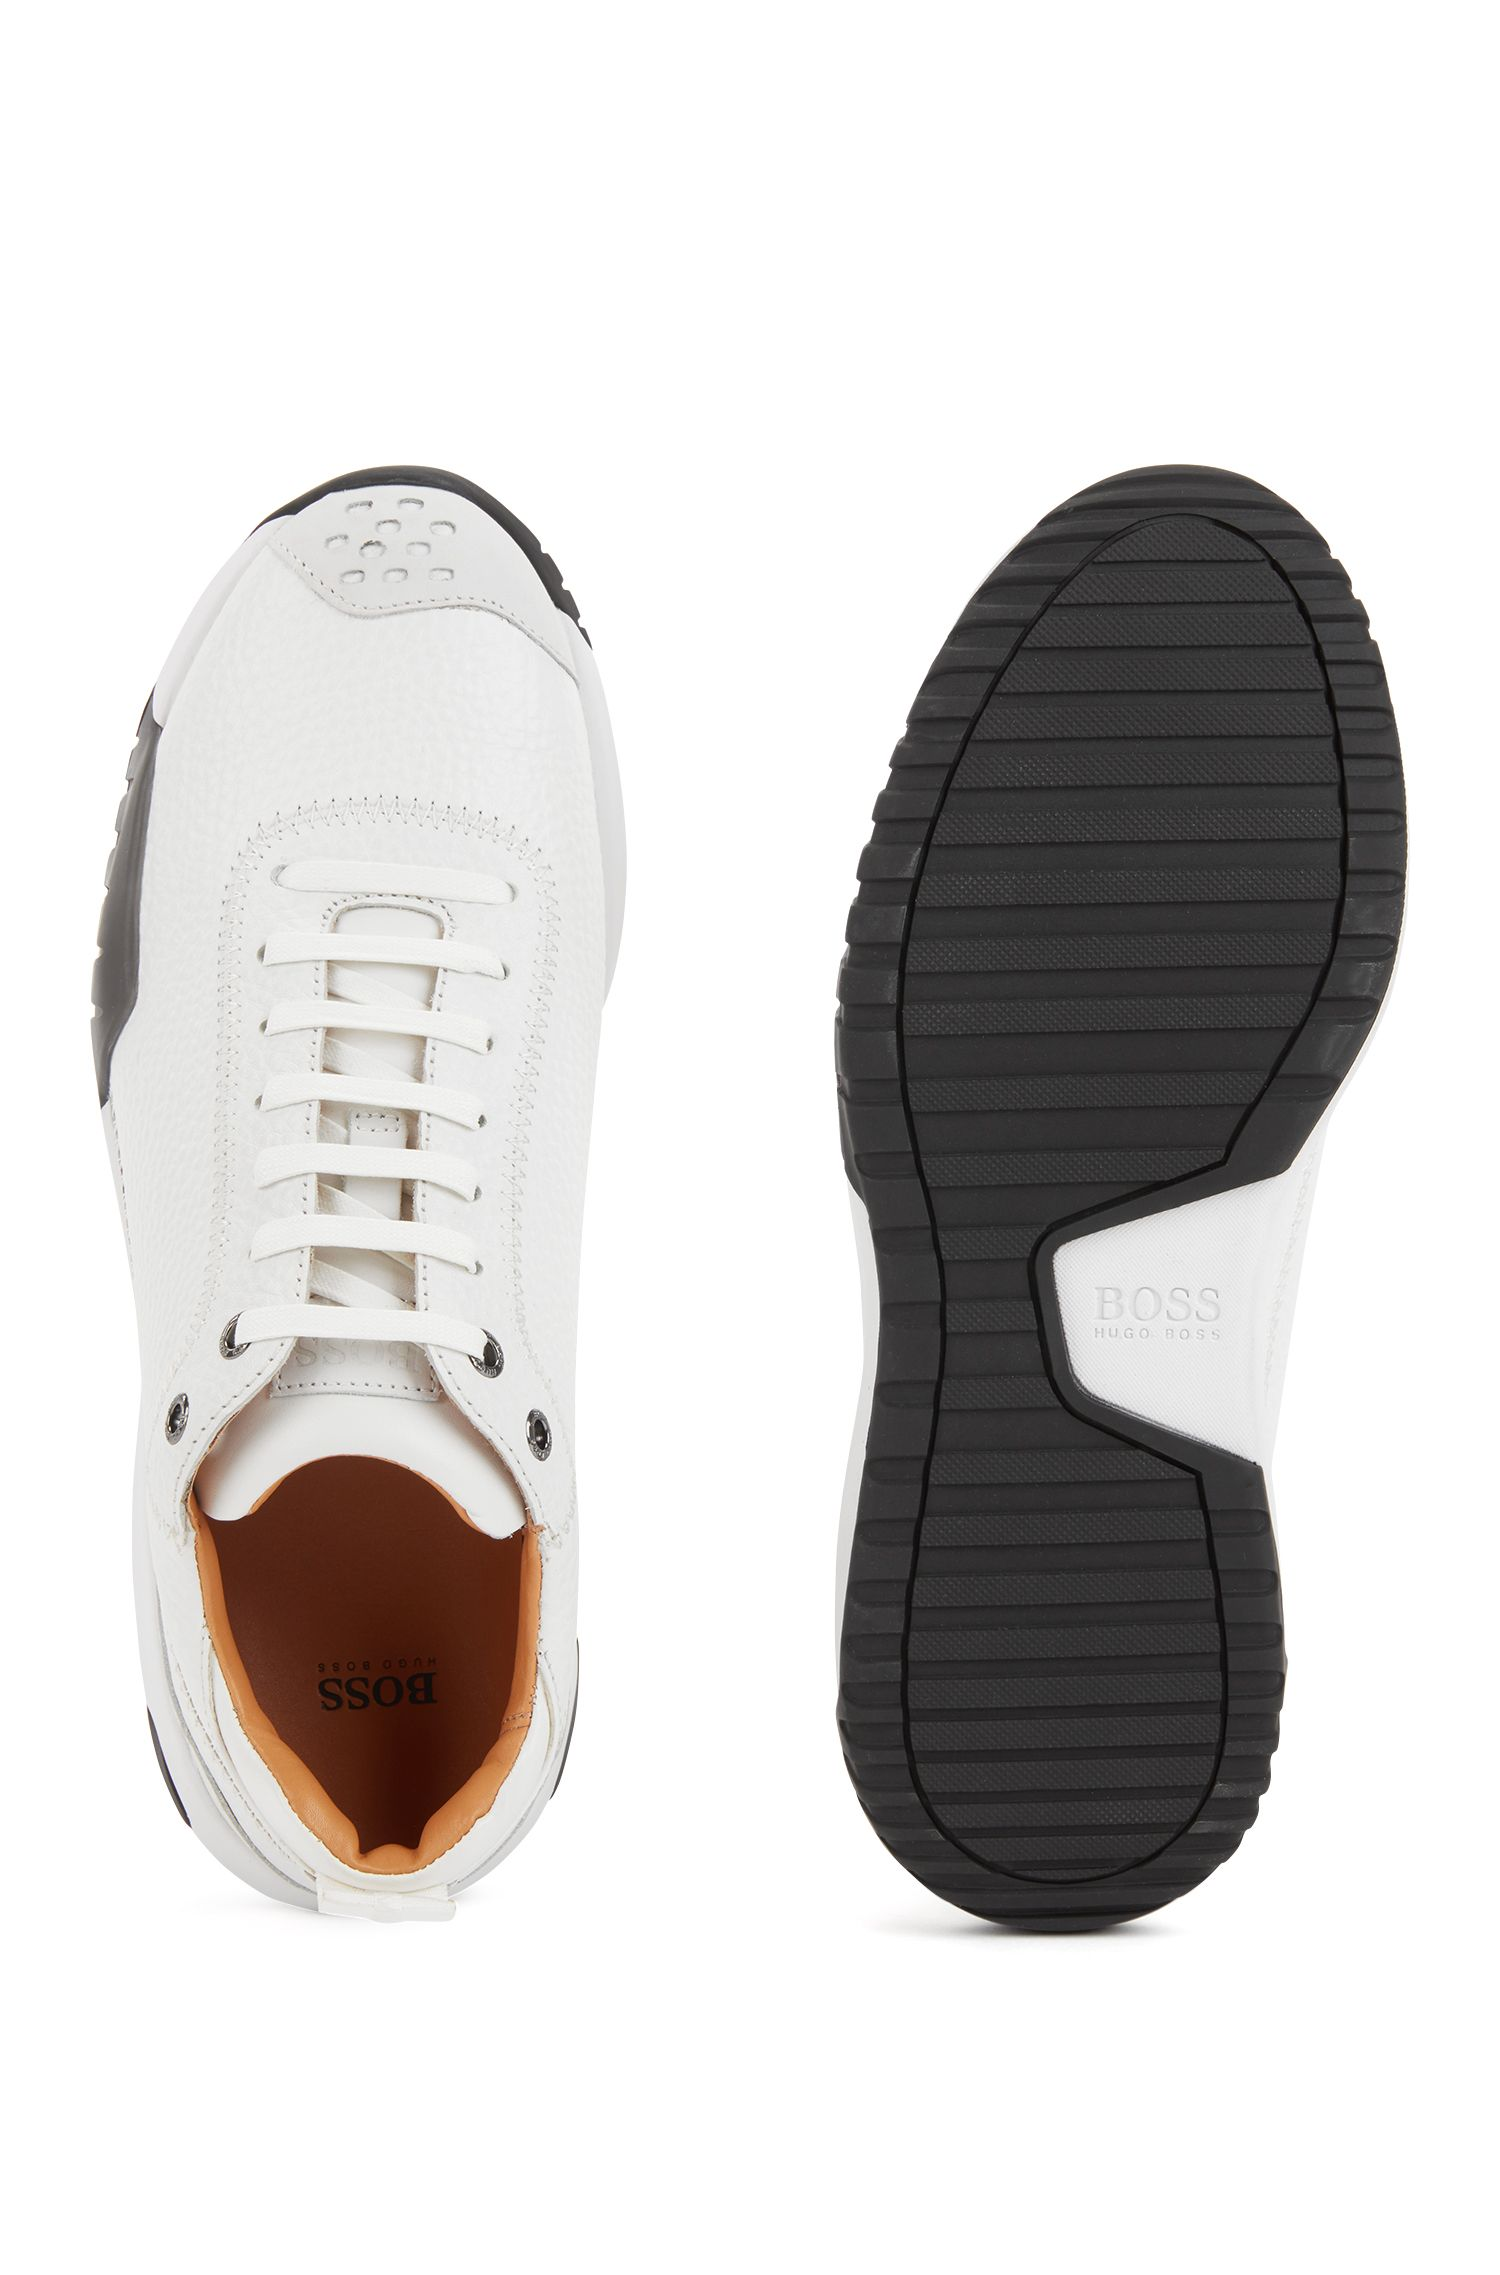 Calf-leather sneakers with Strobel construction, White